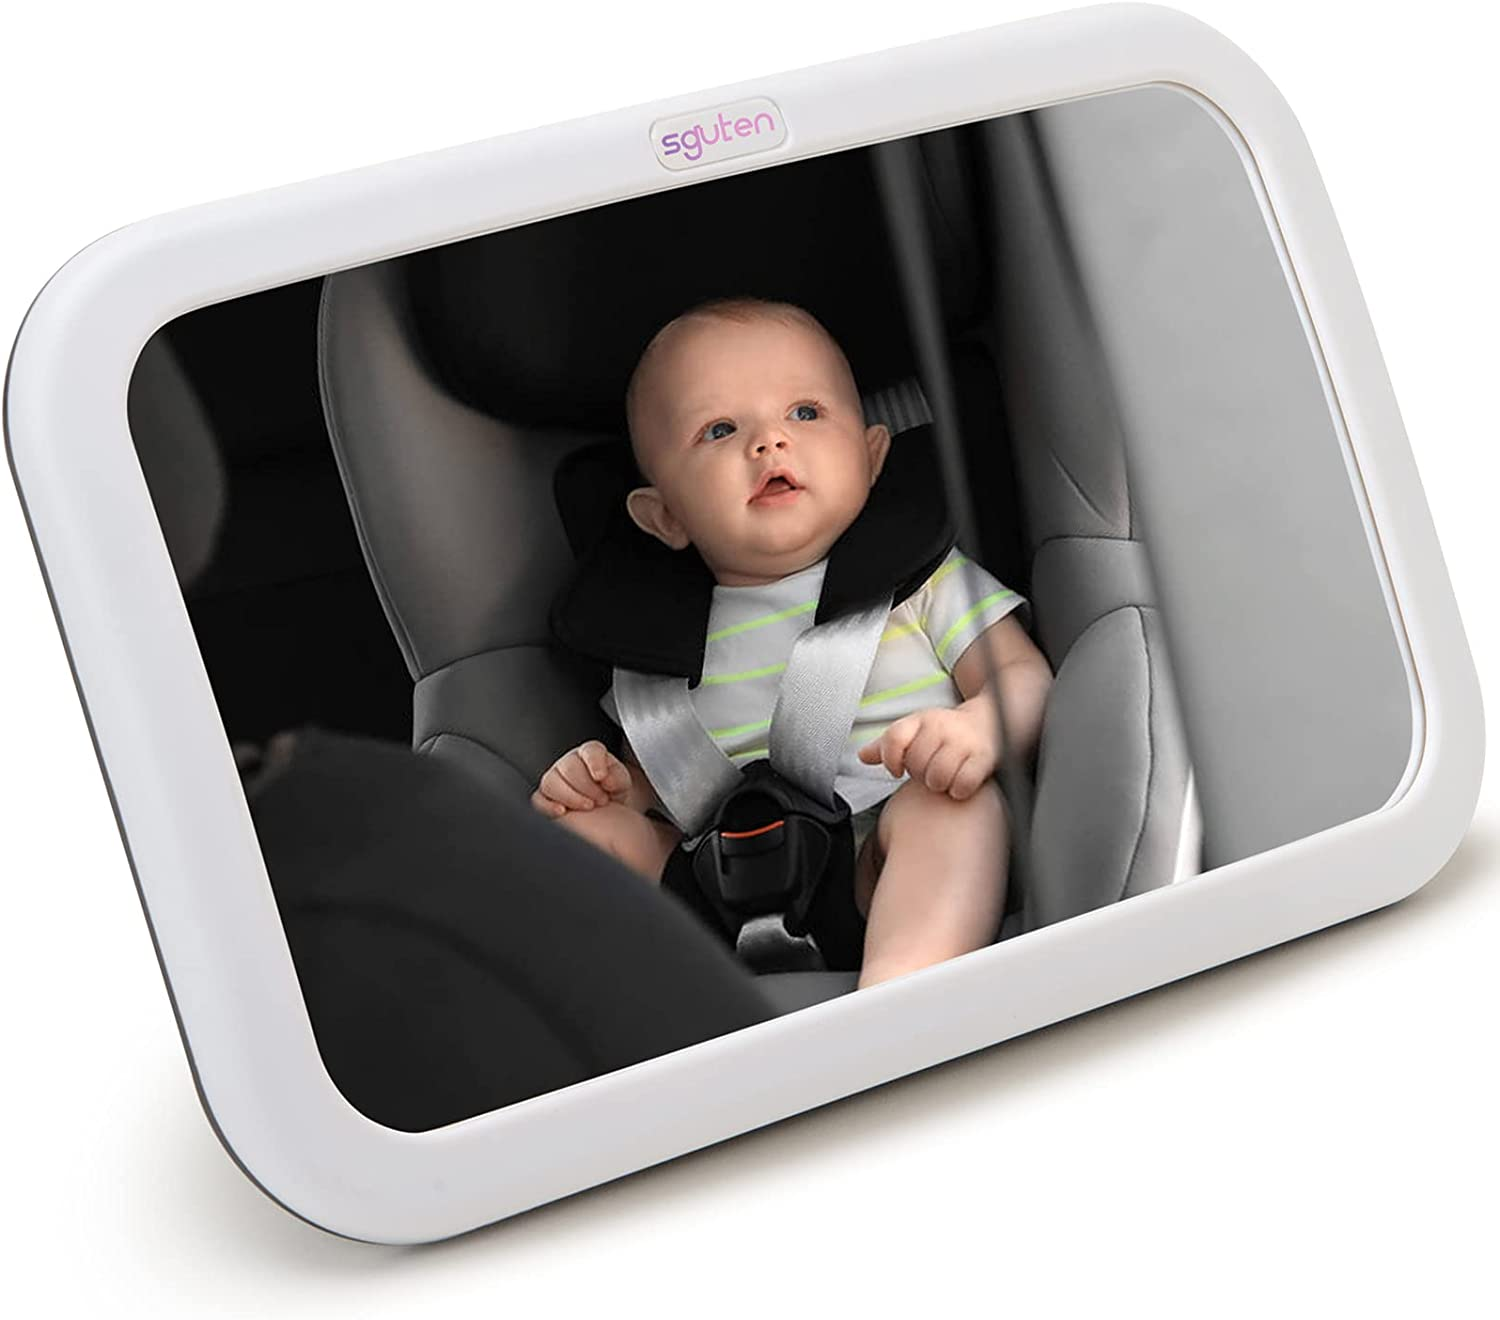 SGUTEN Baby Car Mirror for Car Back Seat Full View Infant Is Portable for Mother to Observe Baby or Pet, Acrylic Car Mirror Baby Rear Facing Seat is a Detachable Large Mirror for Travel,White